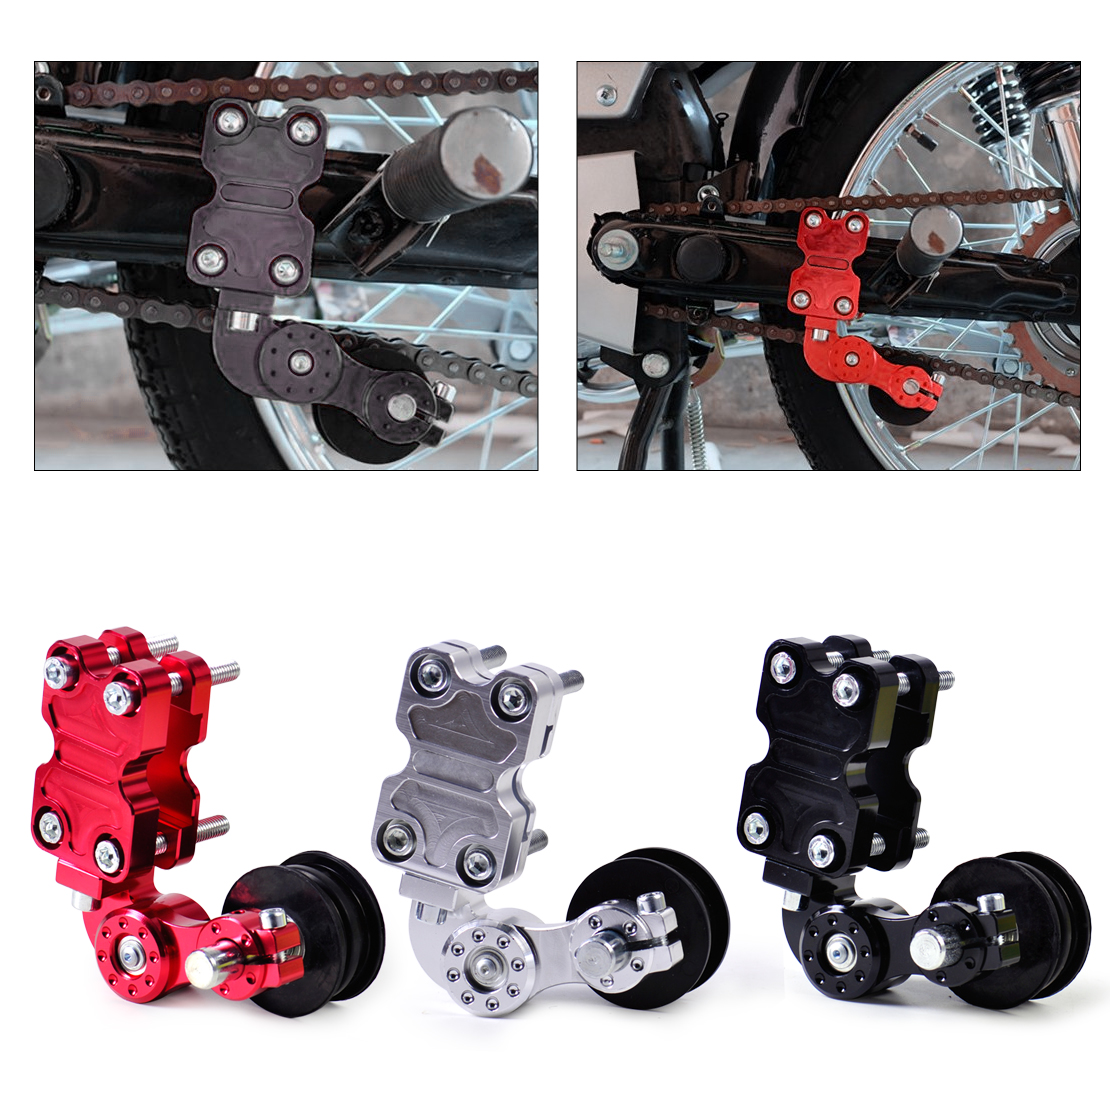 DWCX Motorcycle Adjustable Chain Tensioner Bolt on Roller Motocross for Harley Honda Dirt Street Bike ATV Banshee Suzuki Chopper motorcycle adjustable aluminum chain tensioner adjuster bolt on roller motocross dirt street bike atv for honda kawasaki yamaha